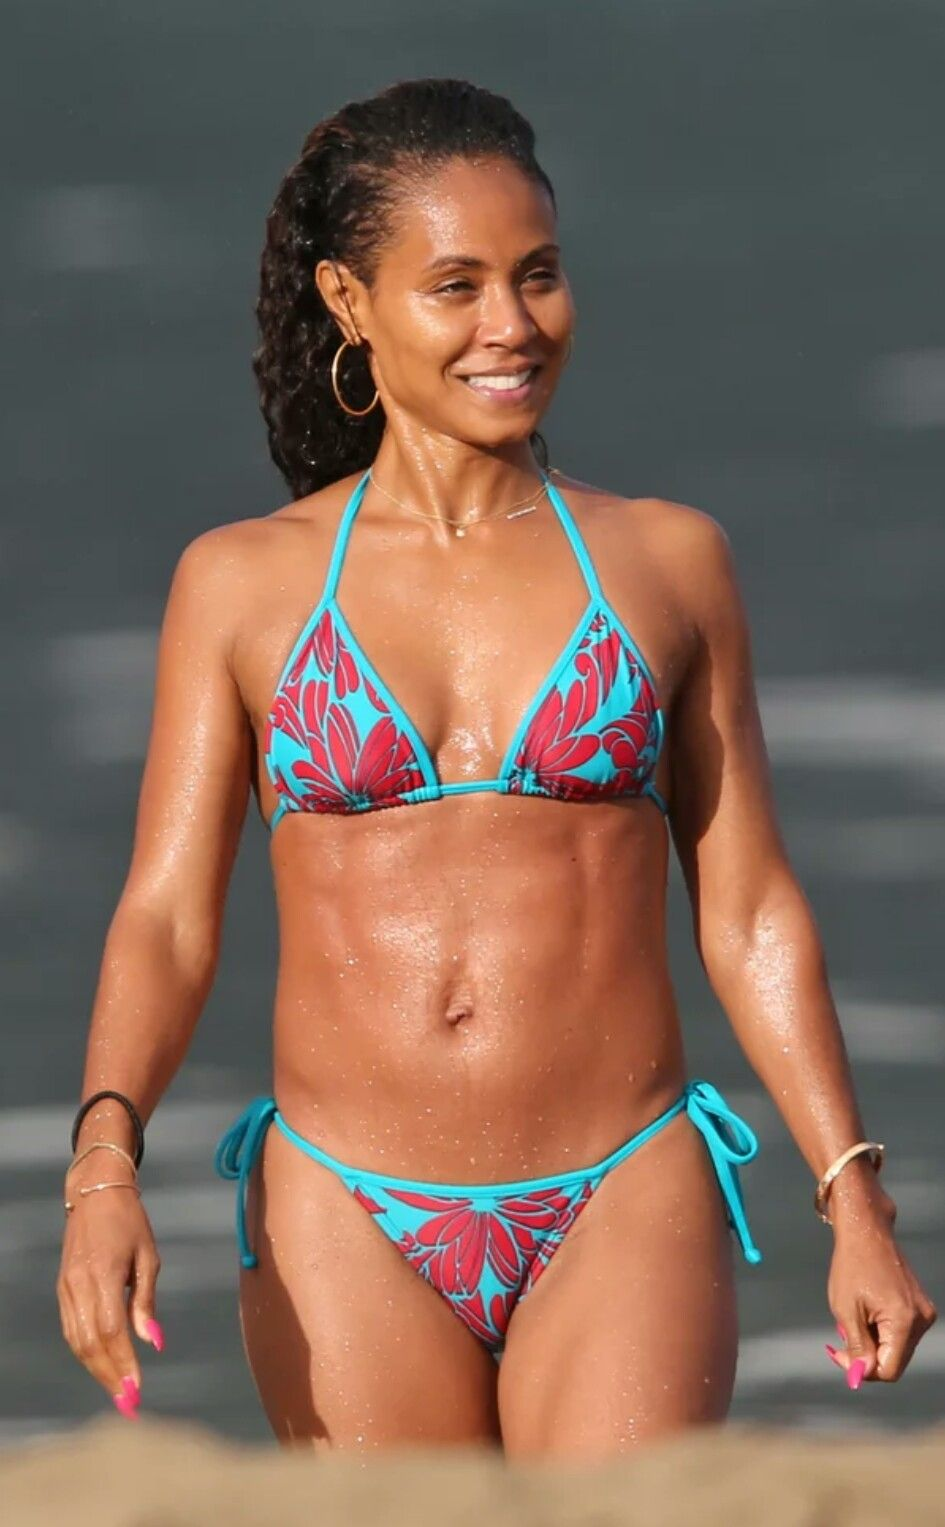 Jada Pinkett Smith on Check Bikini